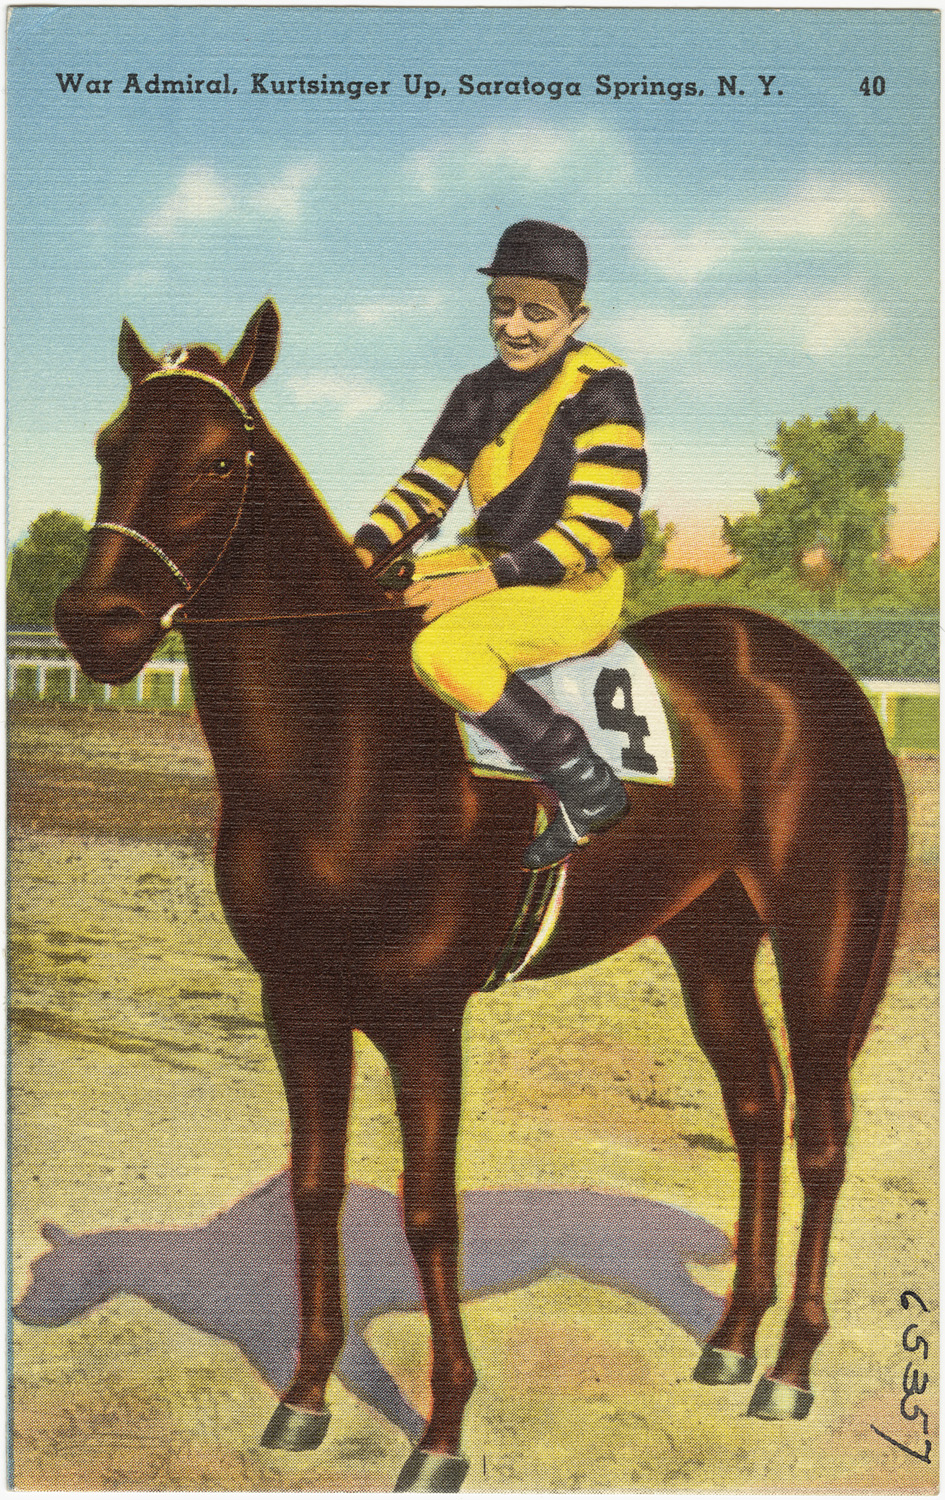 War Admiral postcard (Museum Collection)